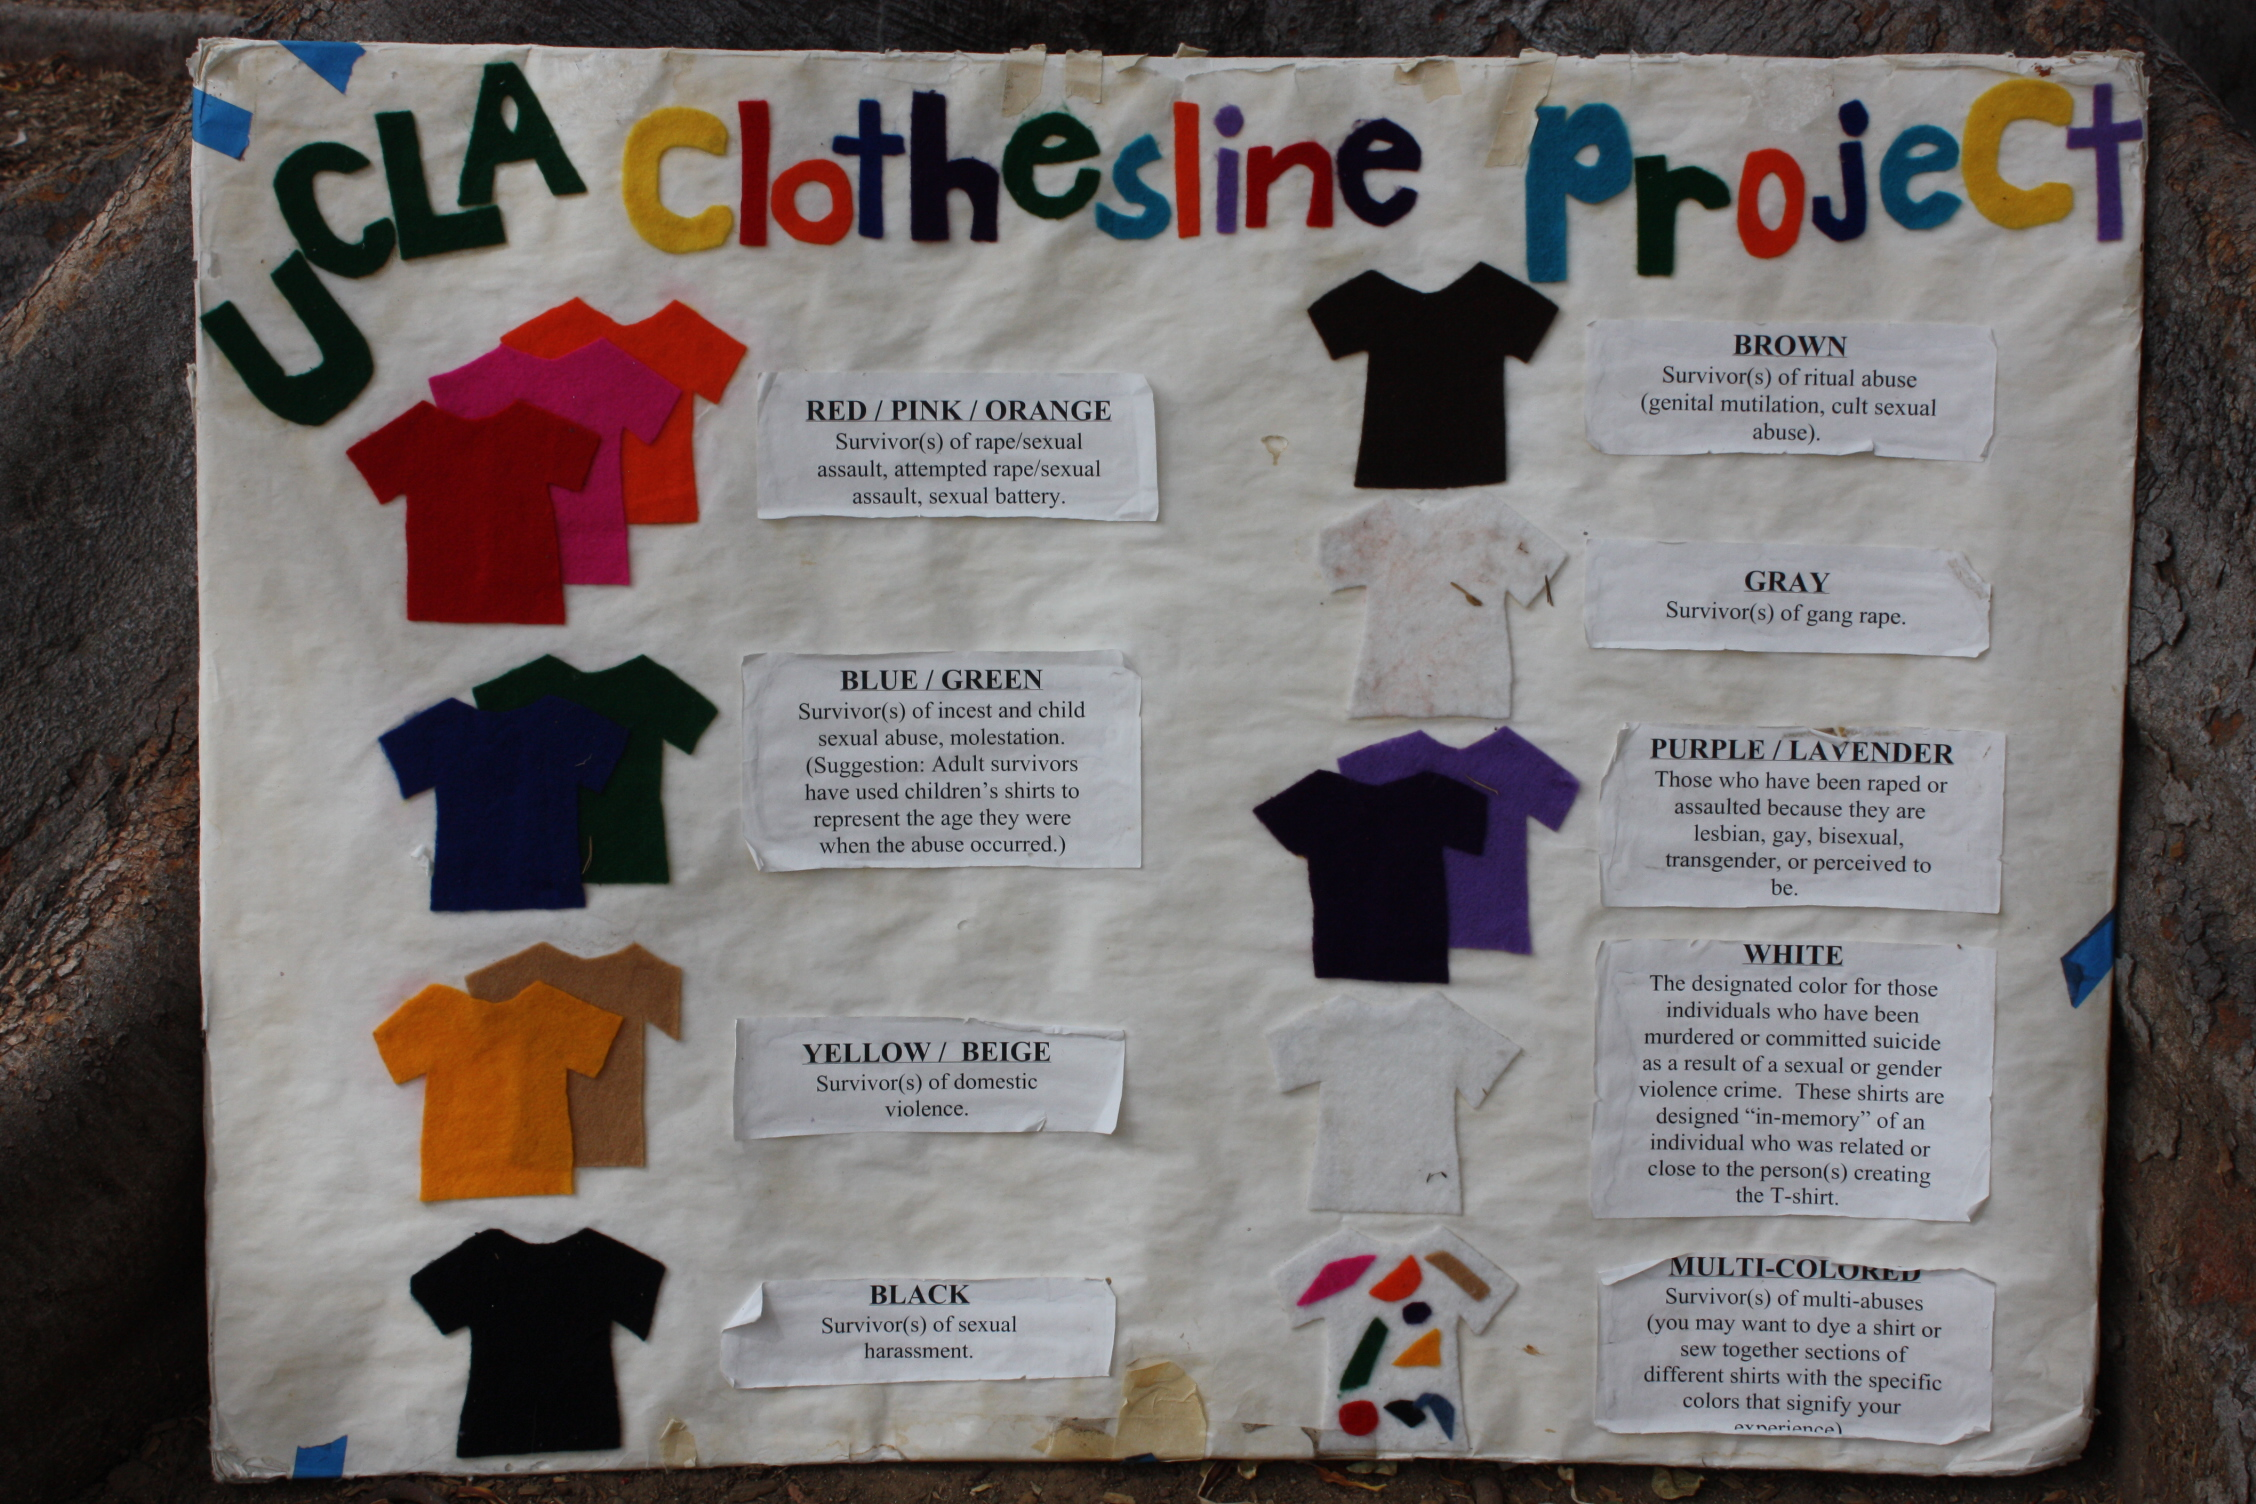 clothesline project The clothesline project is an artistic display to address the issue of violence against women and men it is a vehicle for women and men affected by violence to express their emotions by decorating a shirt they then hang the shirt on a clothesline to be viewed by others as testimony to the problem of violence against women and men this is an opportunity for survivors to.